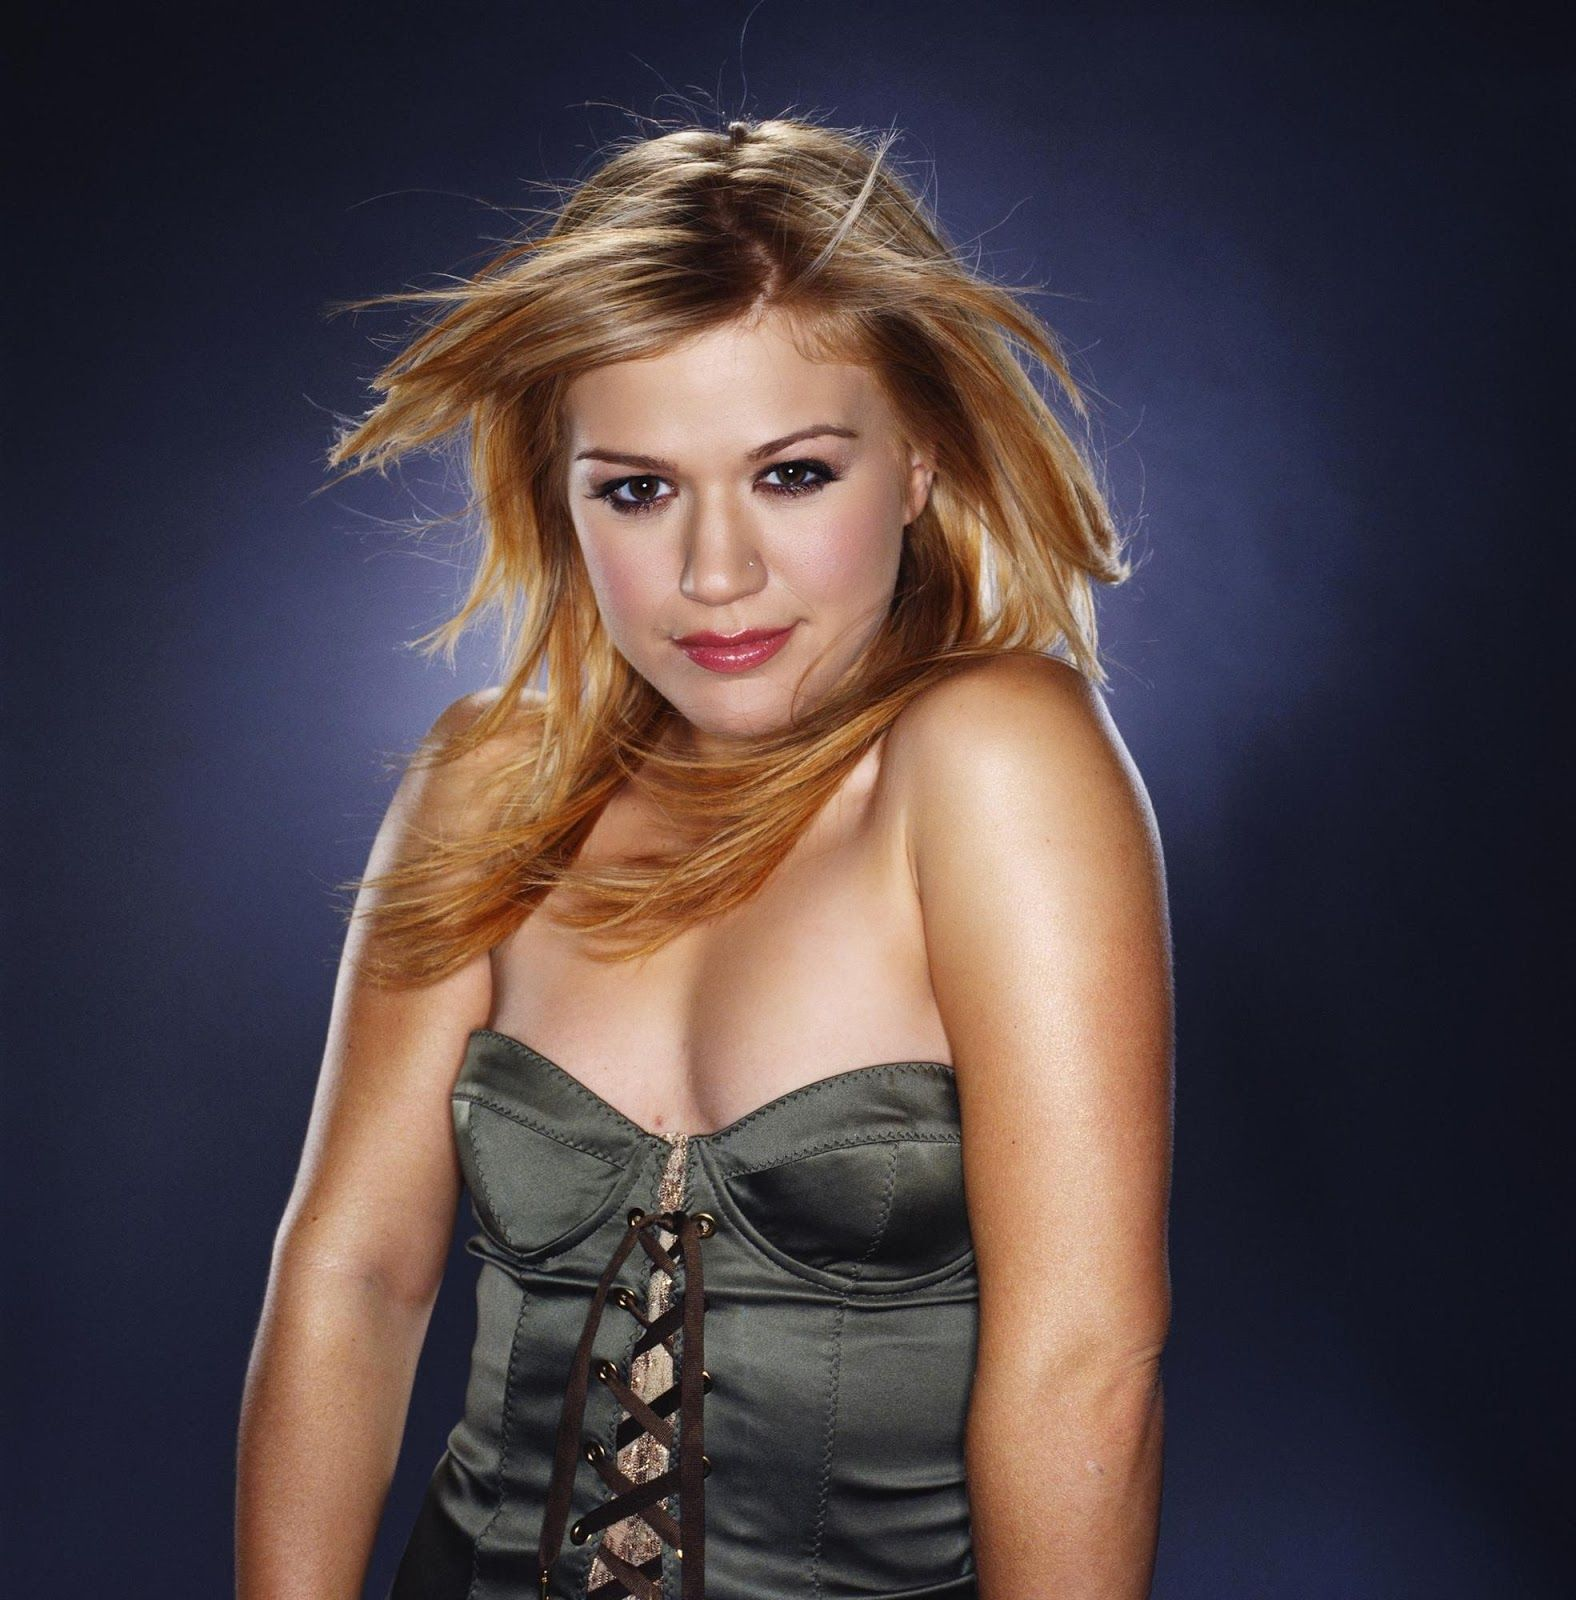 Kelly Clarkson biography